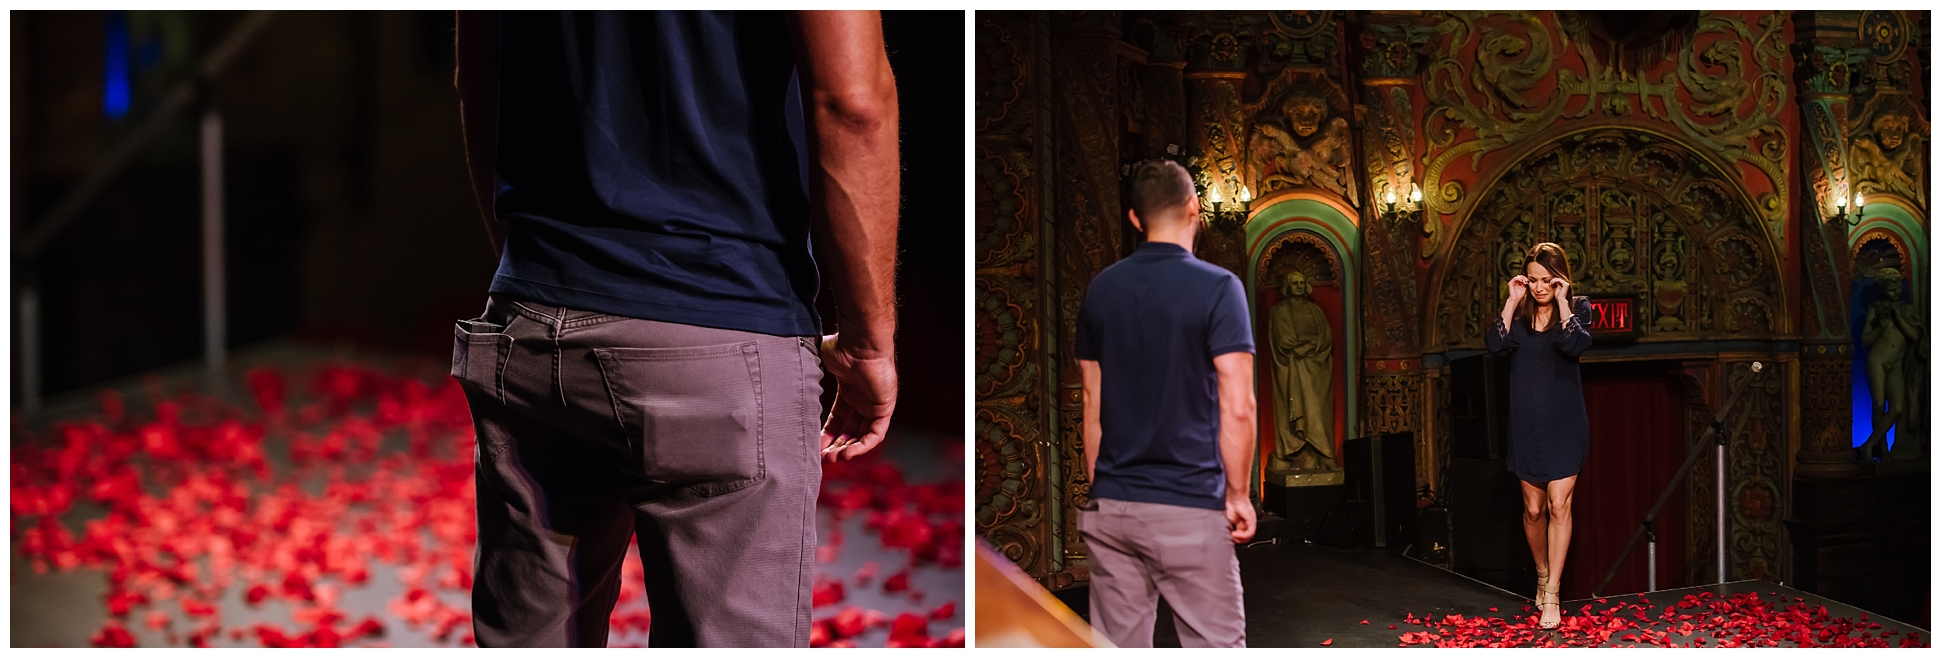 tampa-theater-romantic-surprise-proposal-red-roses-photographer_0007.jpg